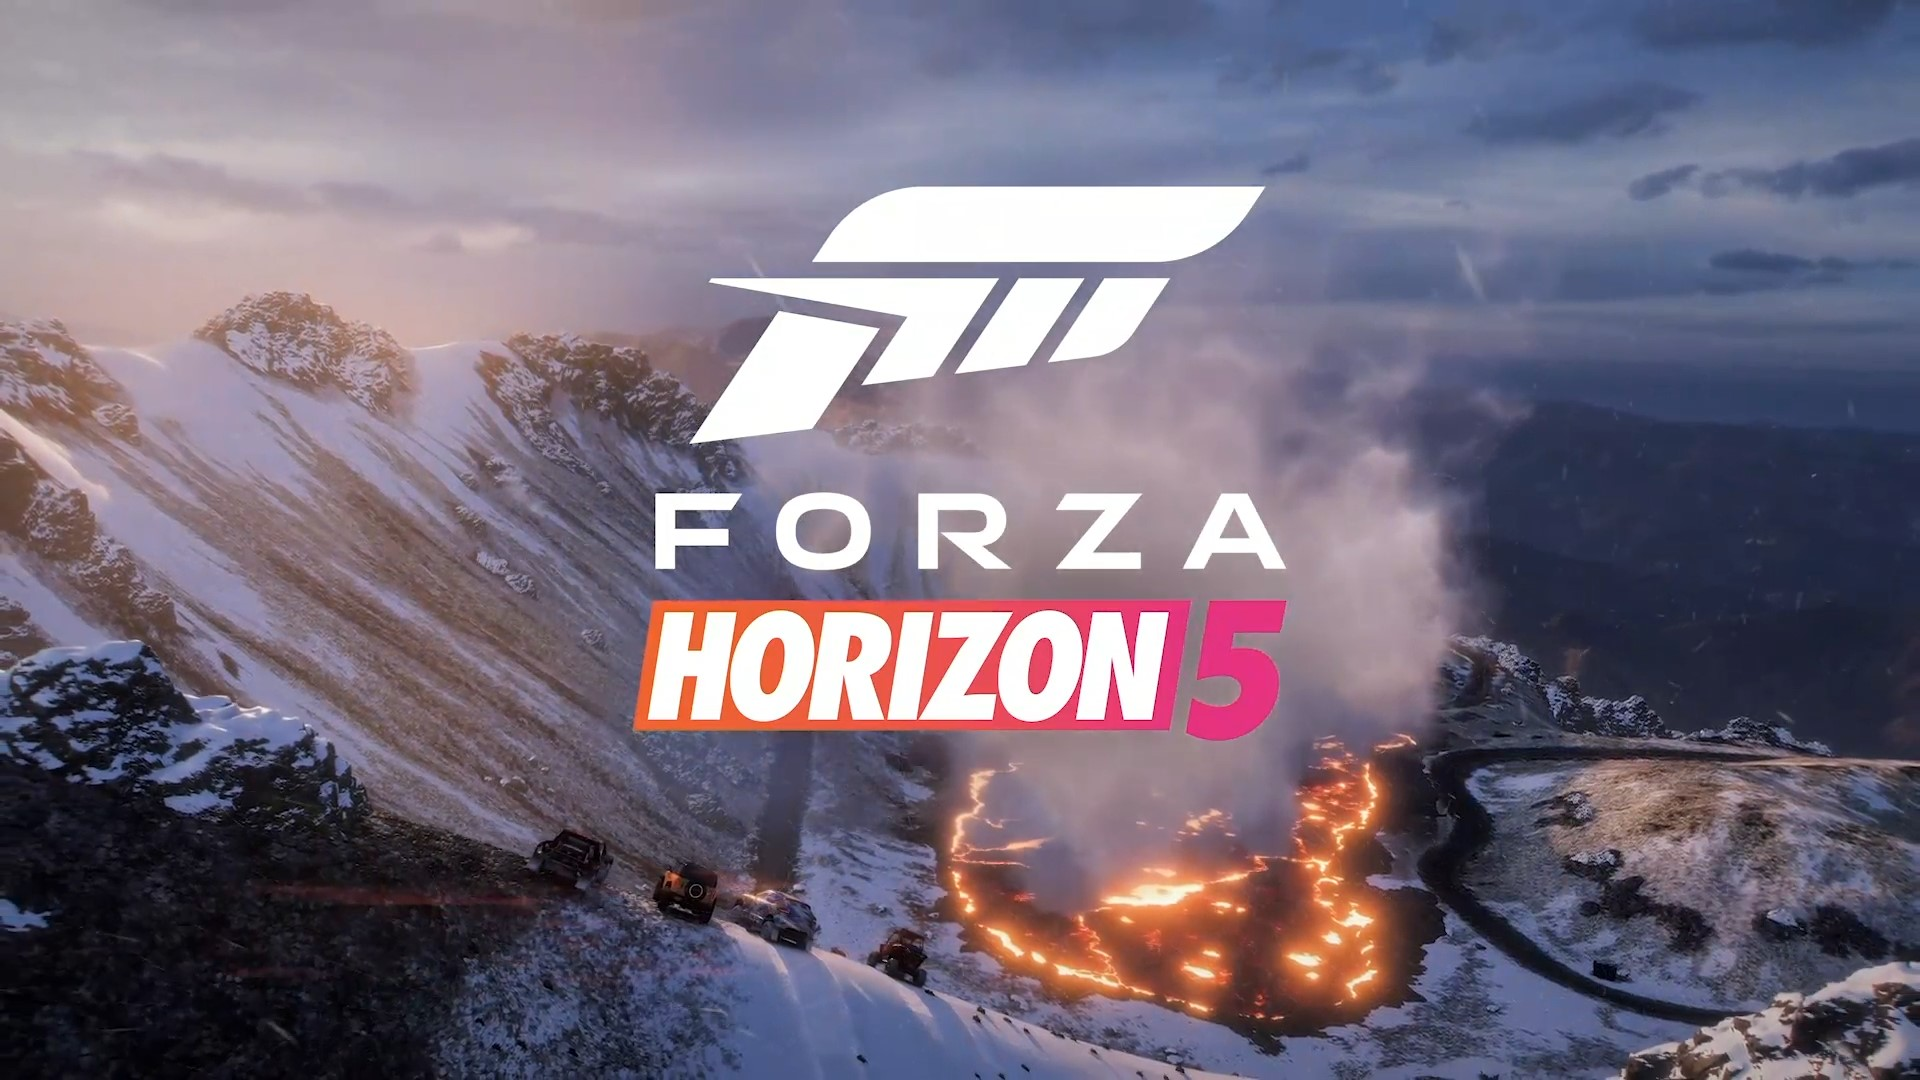 Forza Horizon 5 Release Date, Trailer, Gameplay, System Requirements, and More